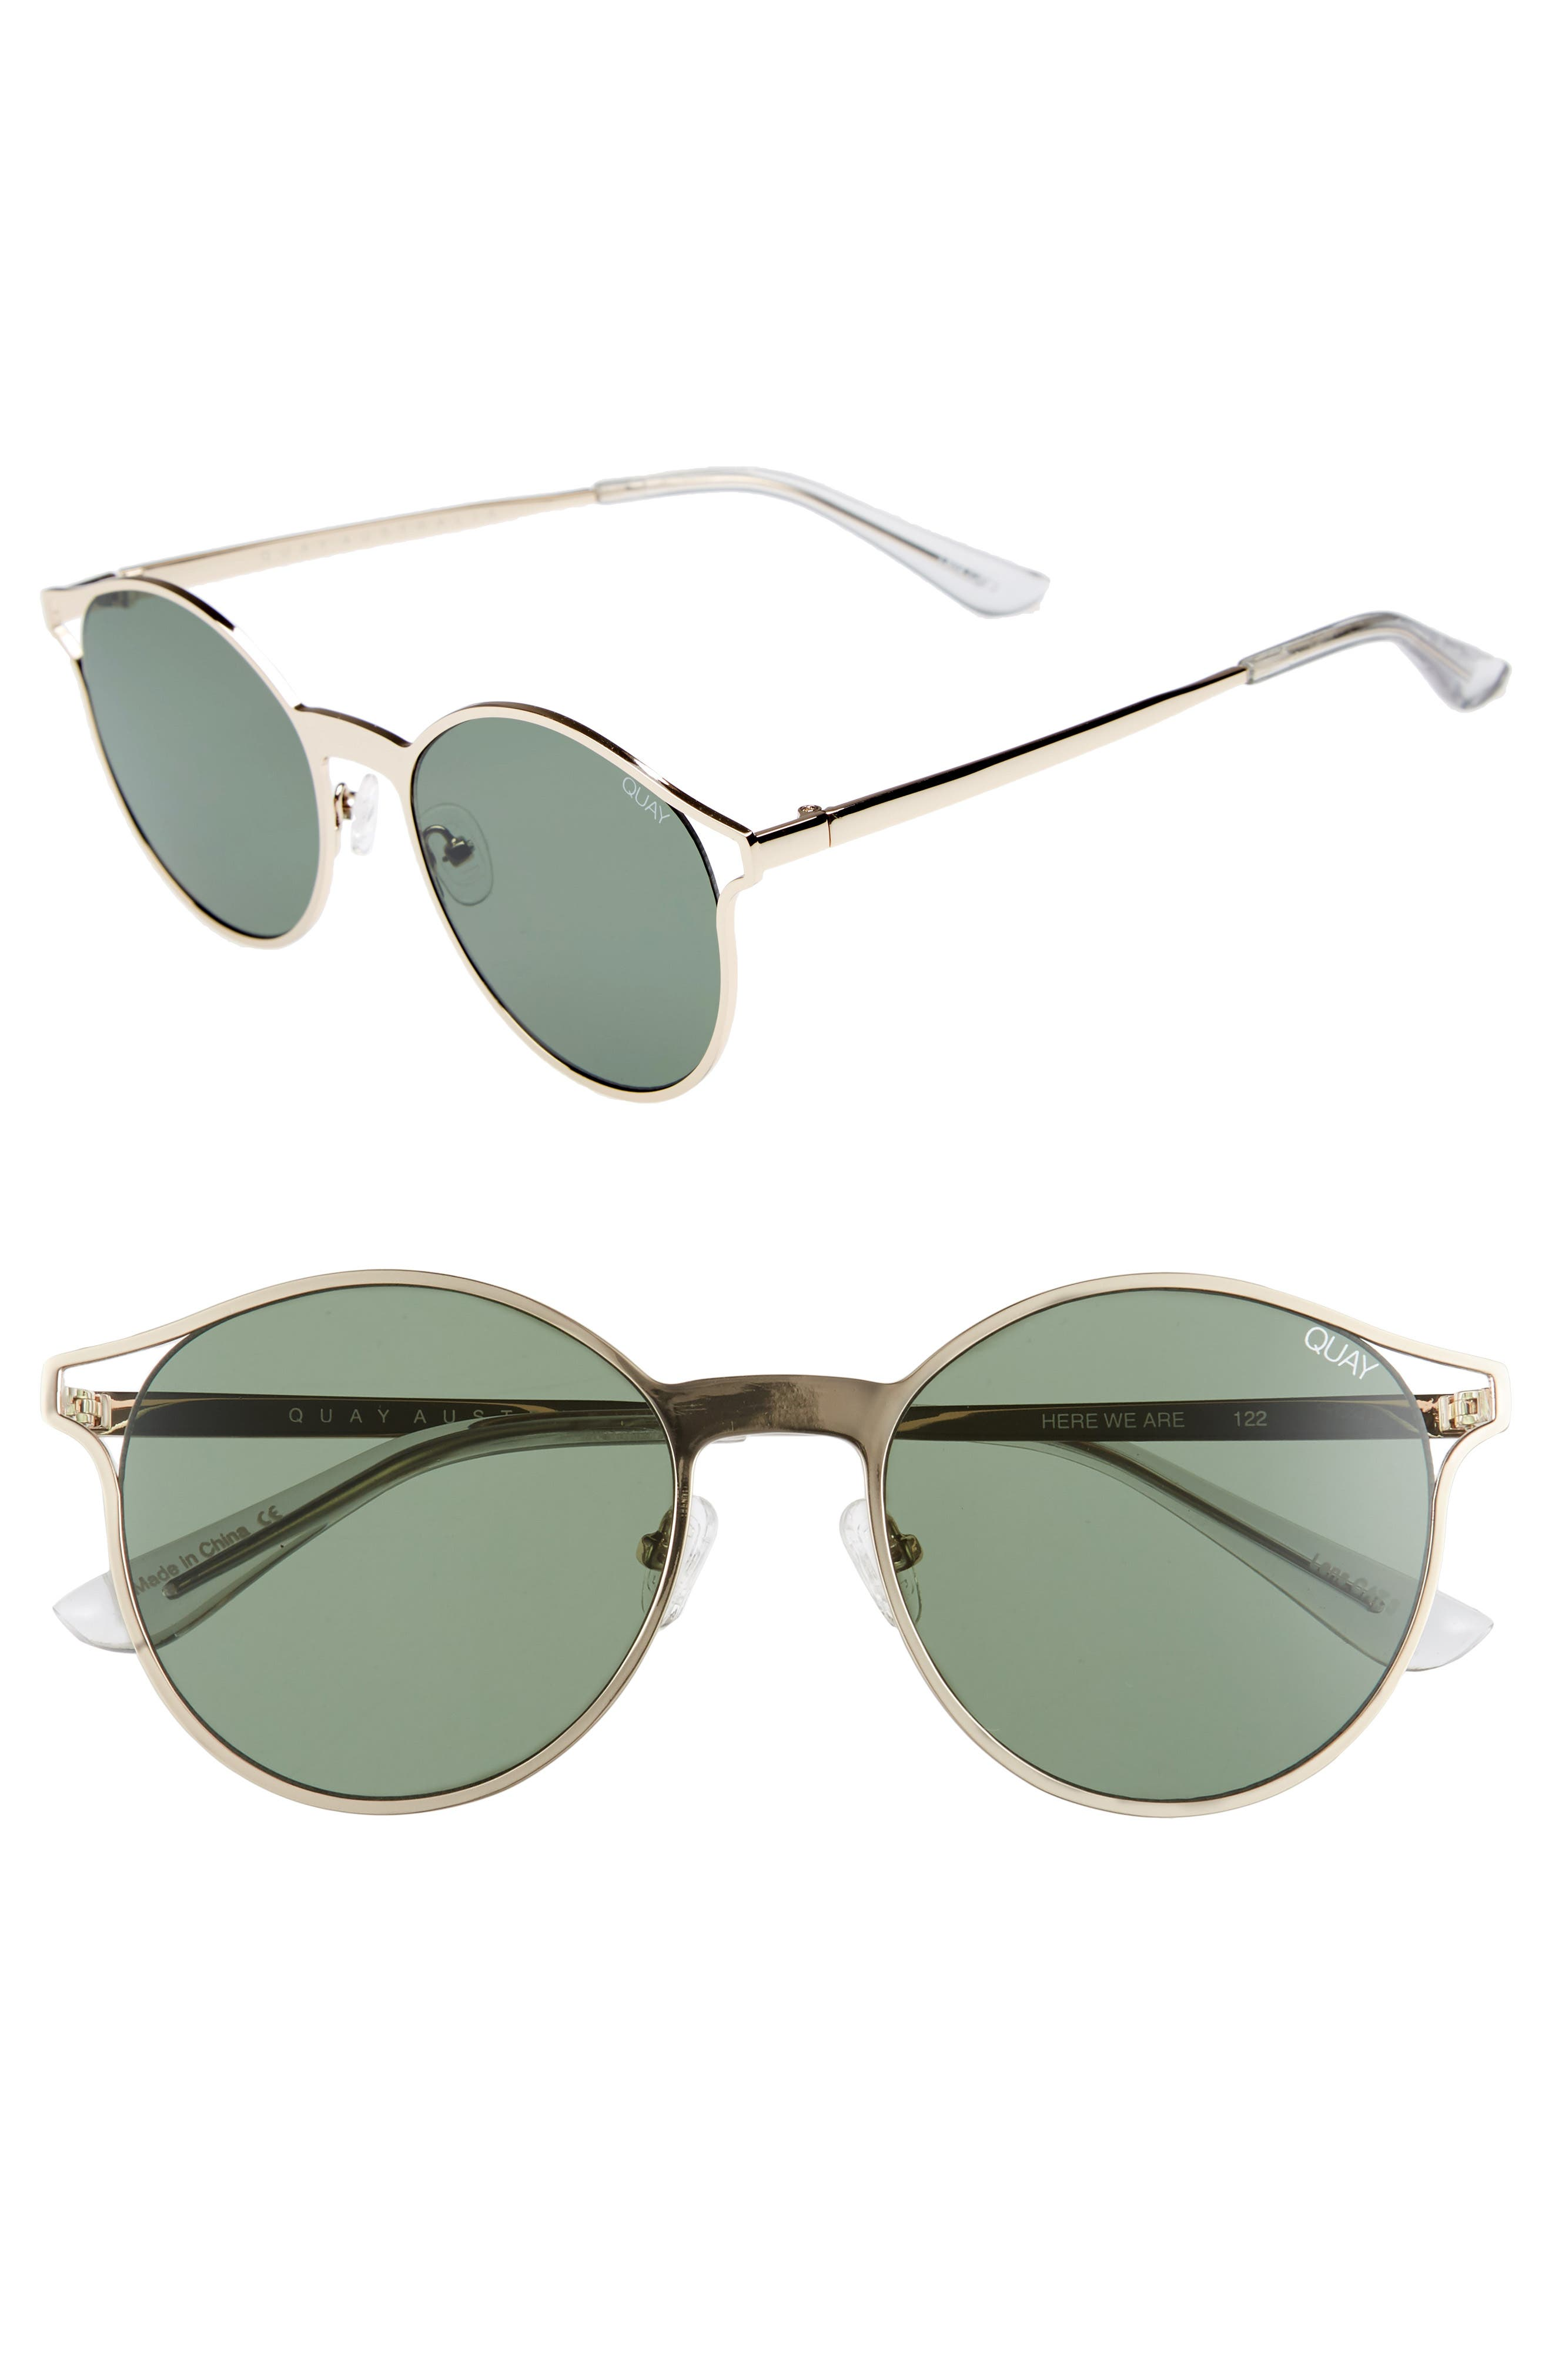 Here We Are 53mm Round Sunglasses,                         Main,                         color, Gold/ Green